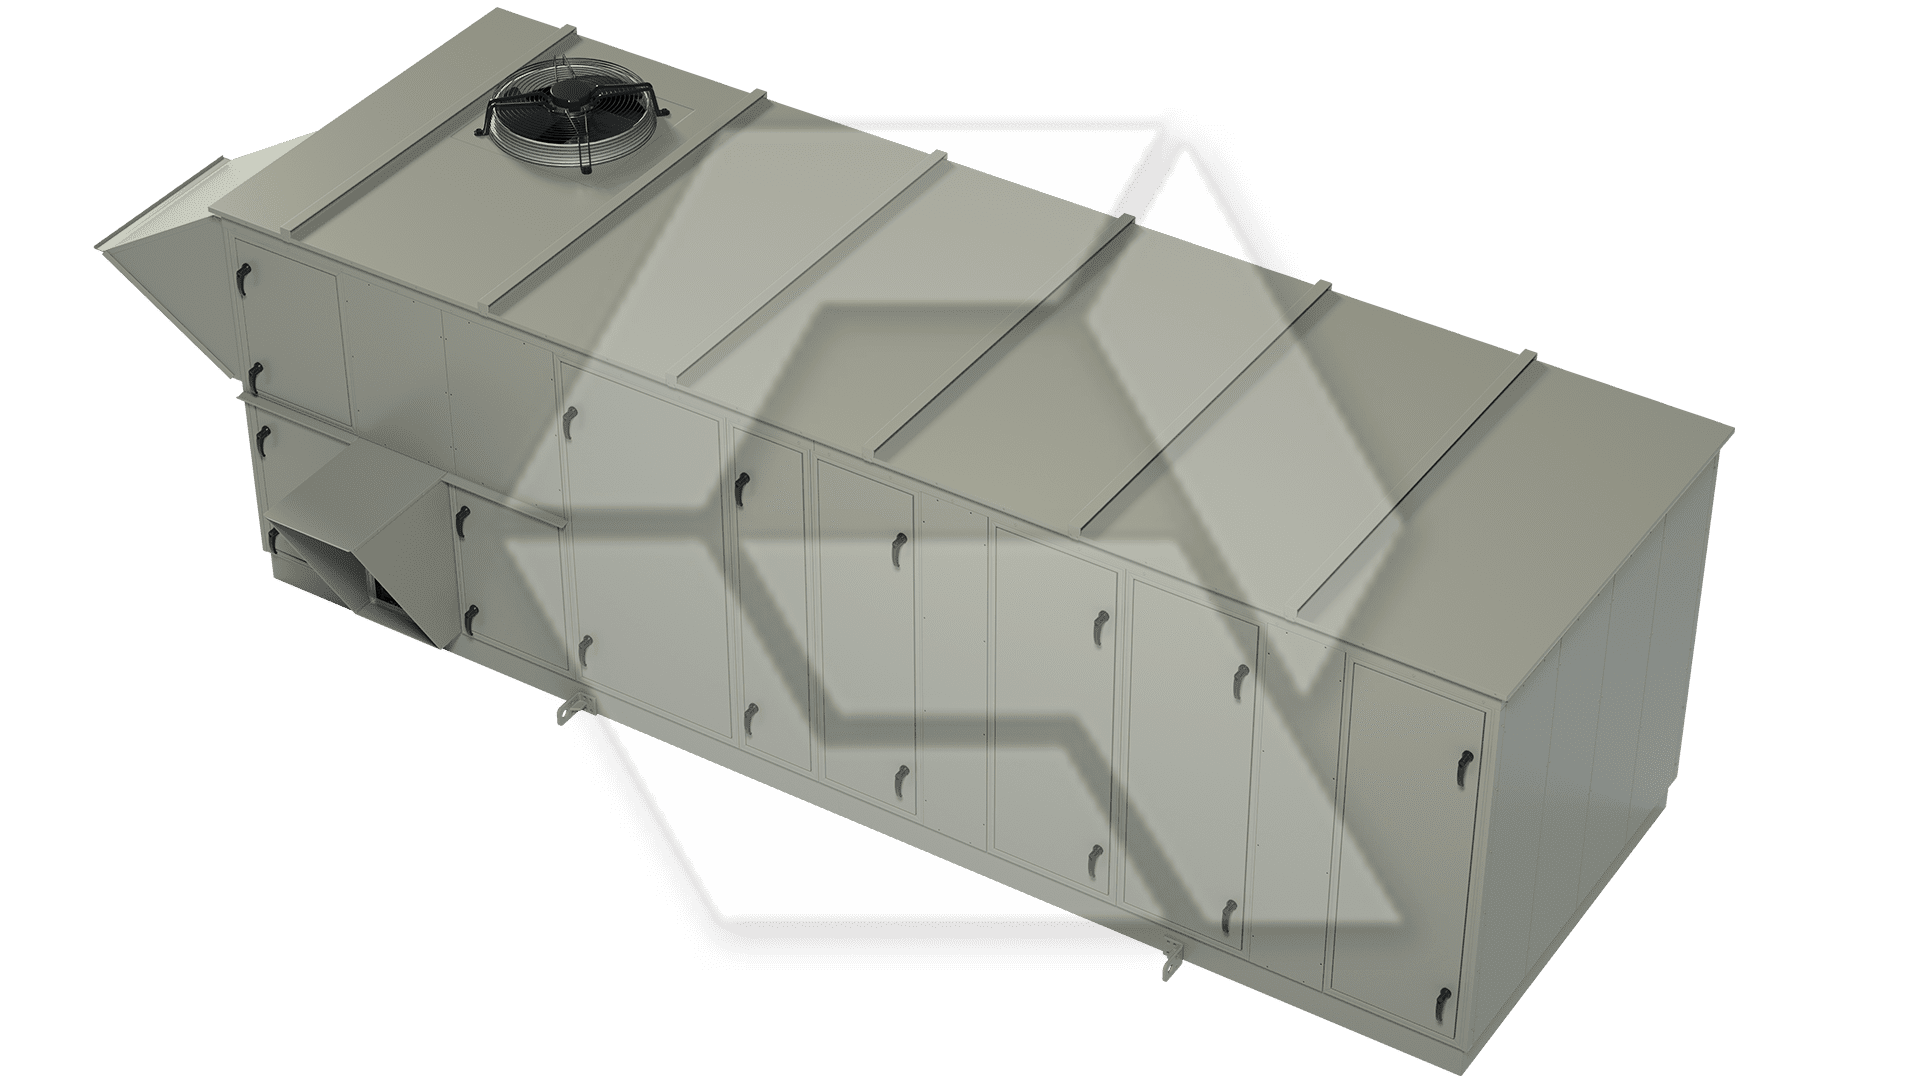 Innovent AHU 8078459-00020 - Dessicant Unit Closed View